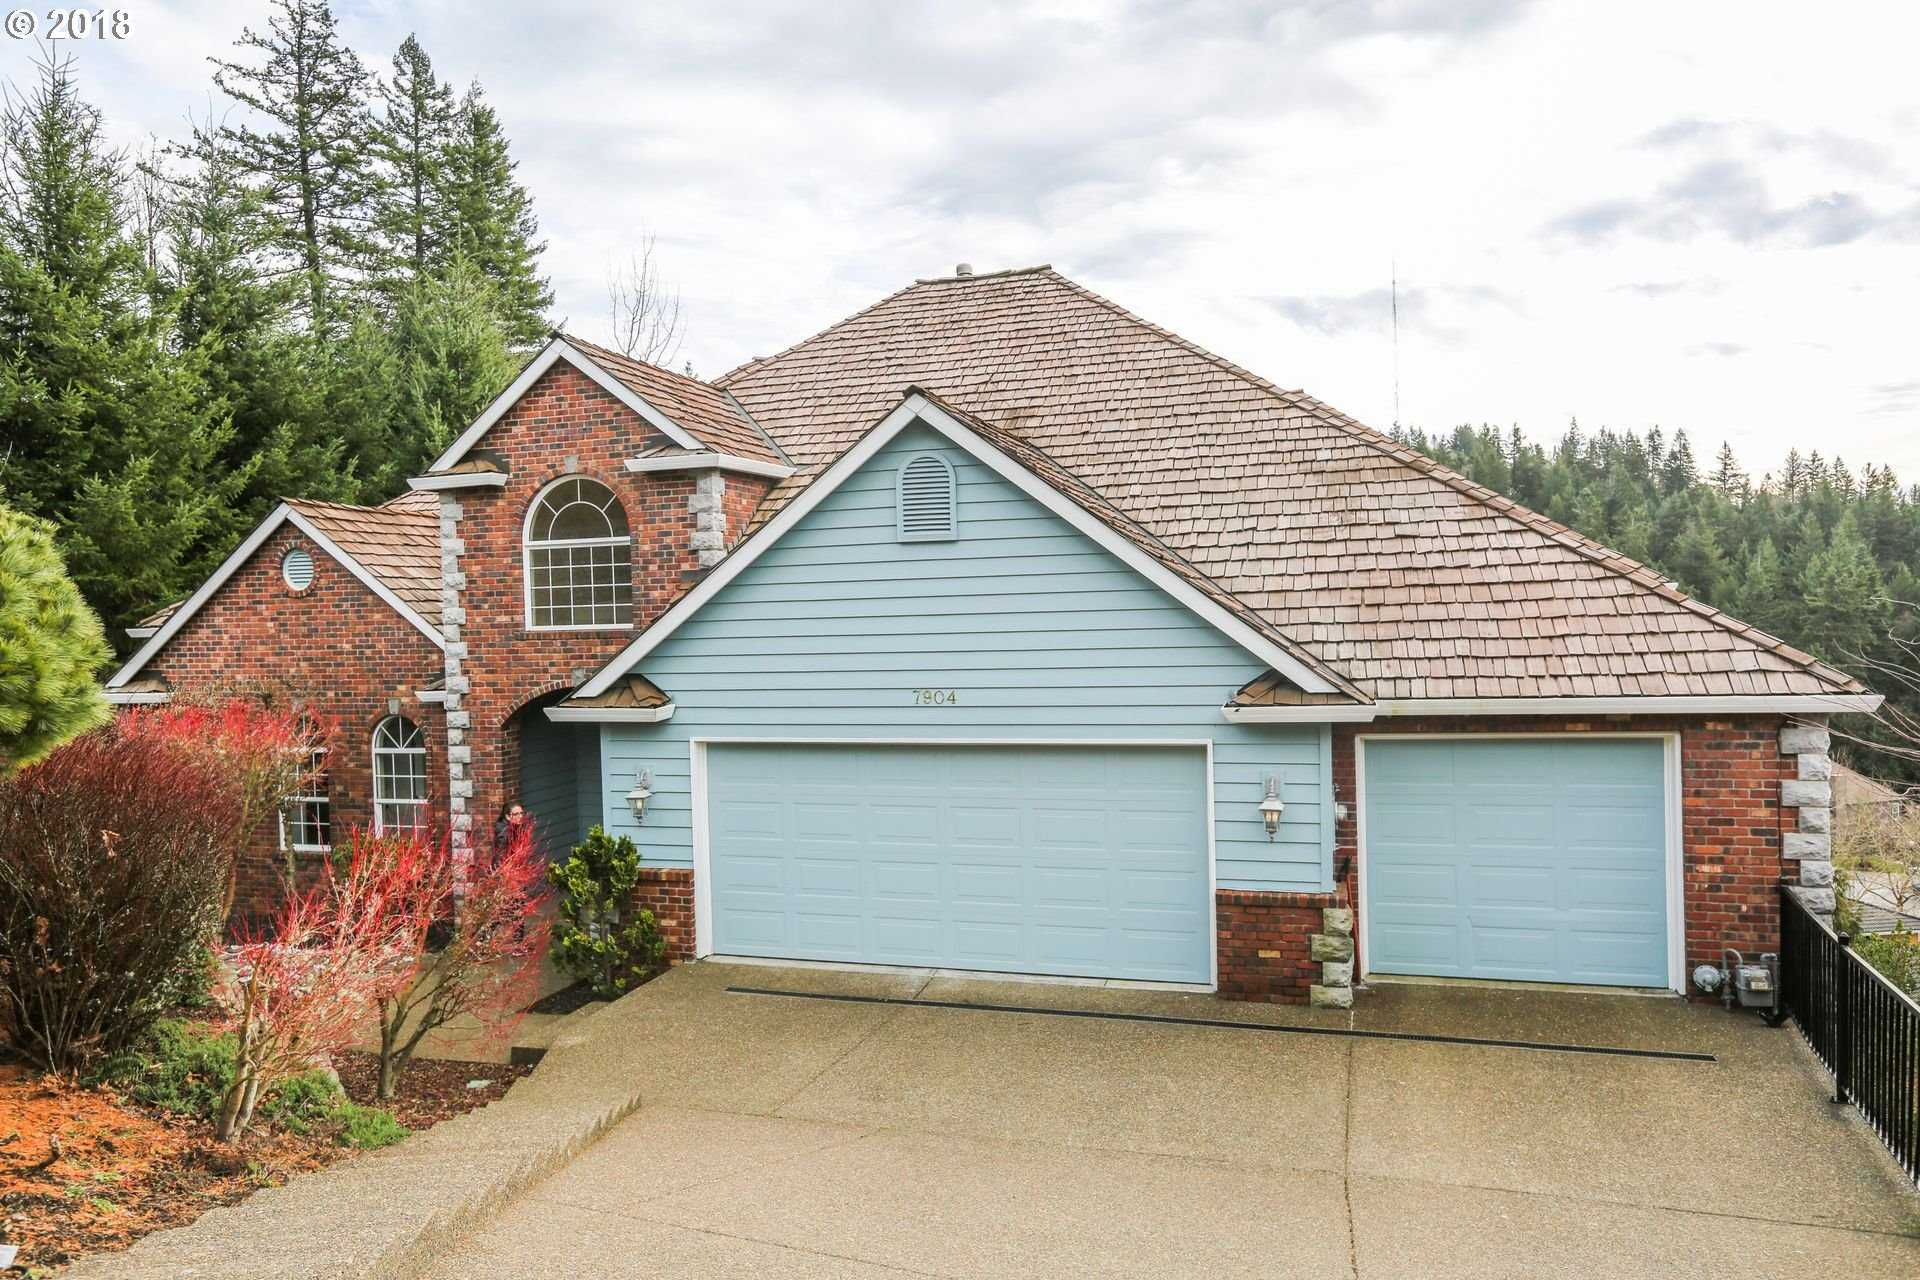 $944,900 - 5Br/5Ba -  for Sale in Portland